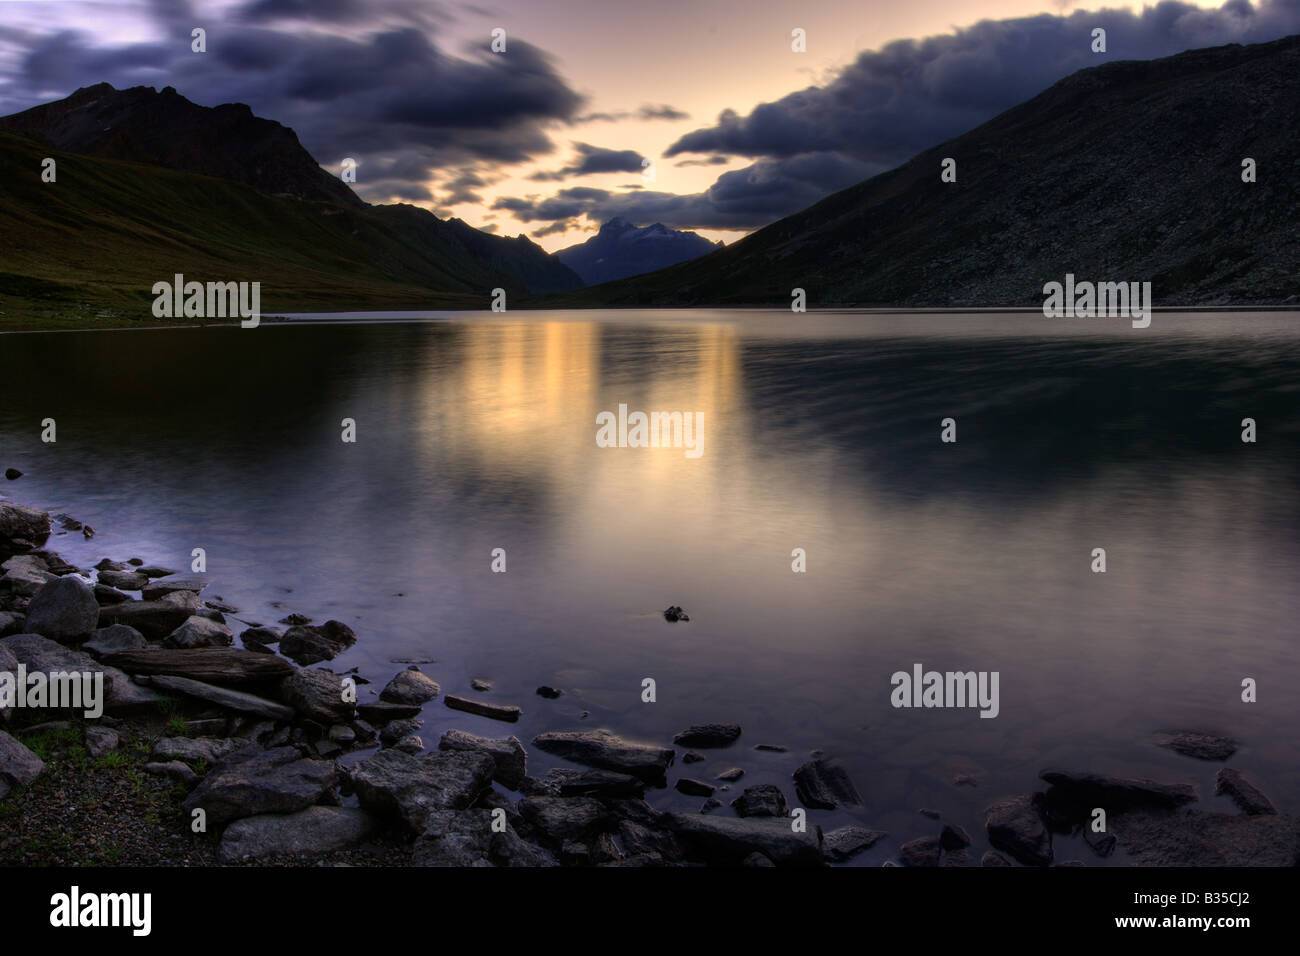 A pre dawn representation of the Nivolet Lake, an alpine glacial lake in the heart of the Gran Paradiso National - Stock Image